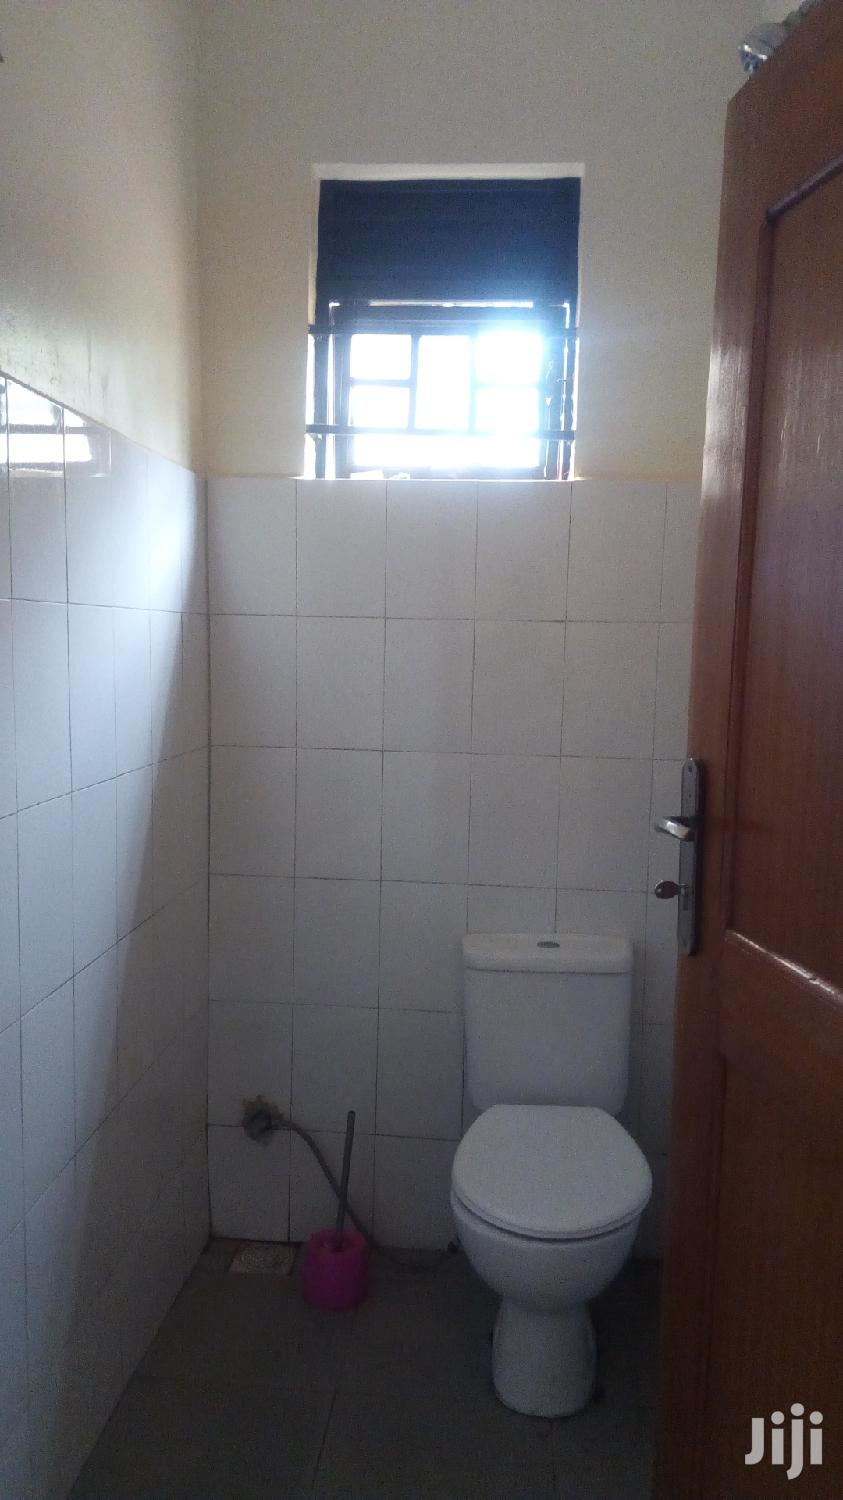 Kitetika Single Room Self Contained for Rent | Houses & Apartments For Rent for sale in Kampala, Central Region, Uganda